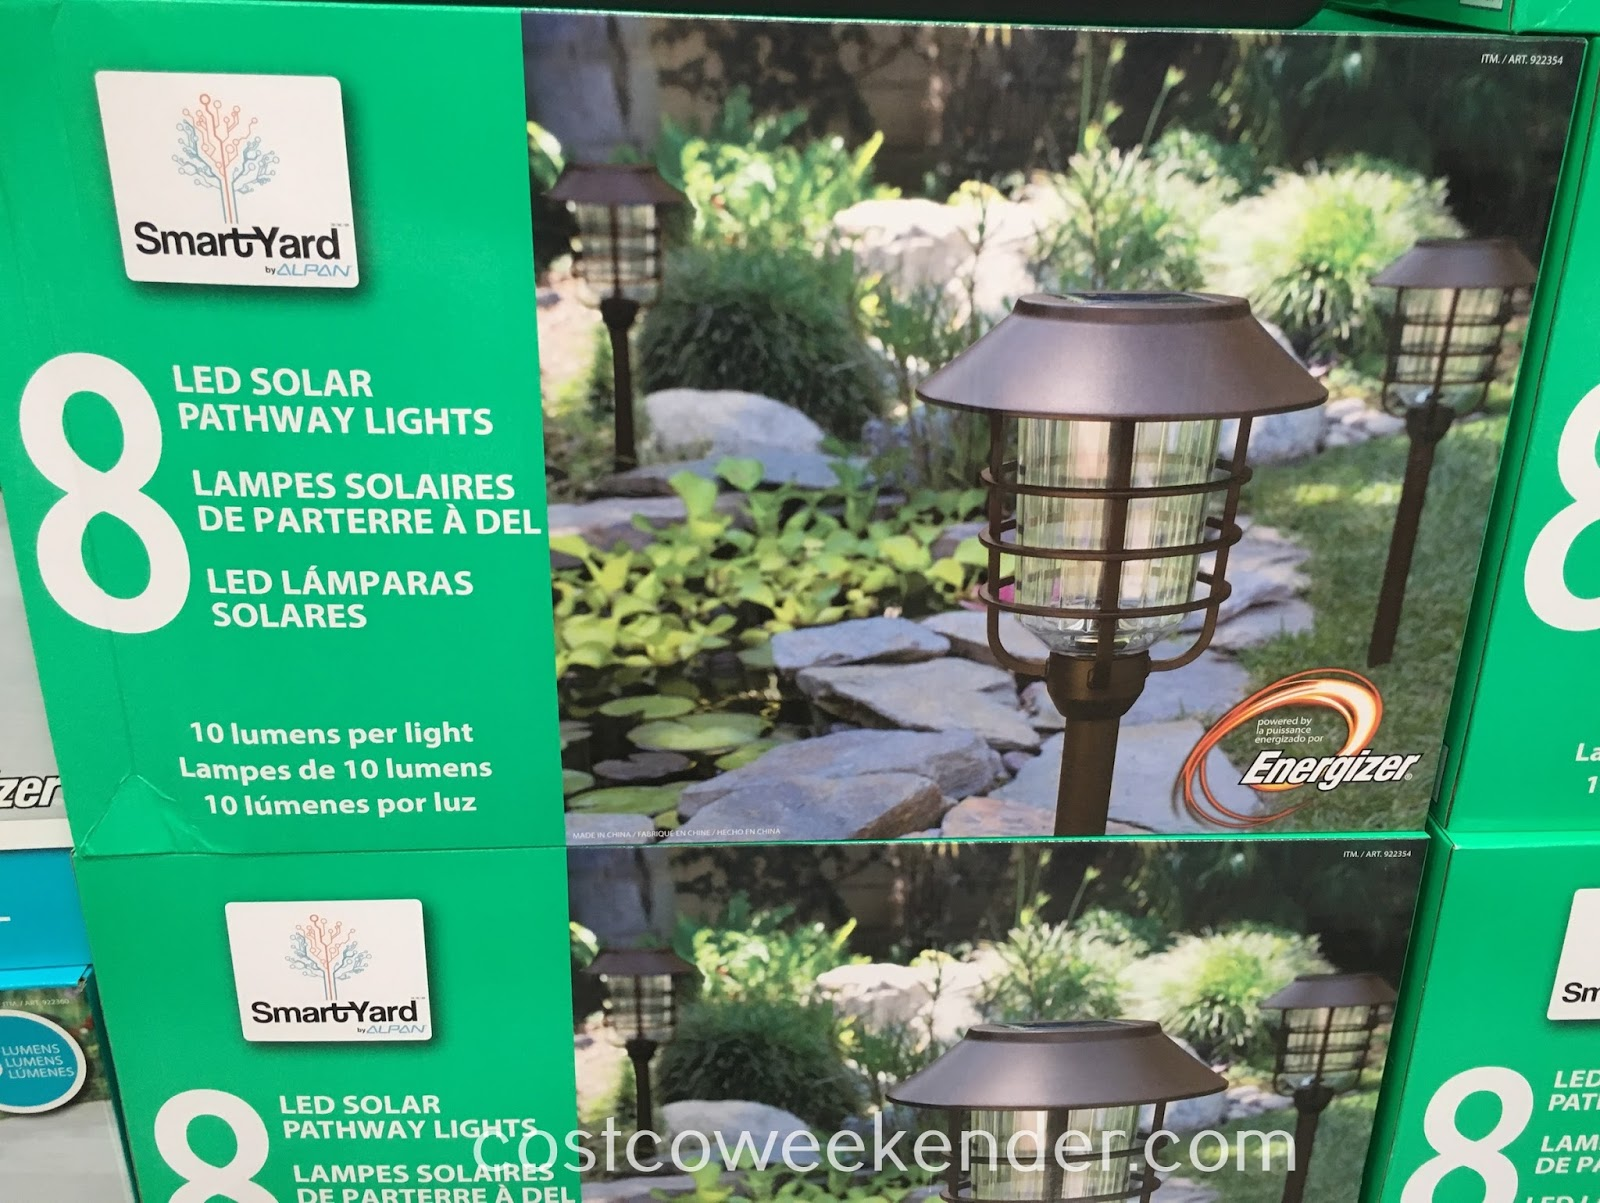 Ensure the exterior of your home is well lit with SmartYard LED Solar Pathway Lights